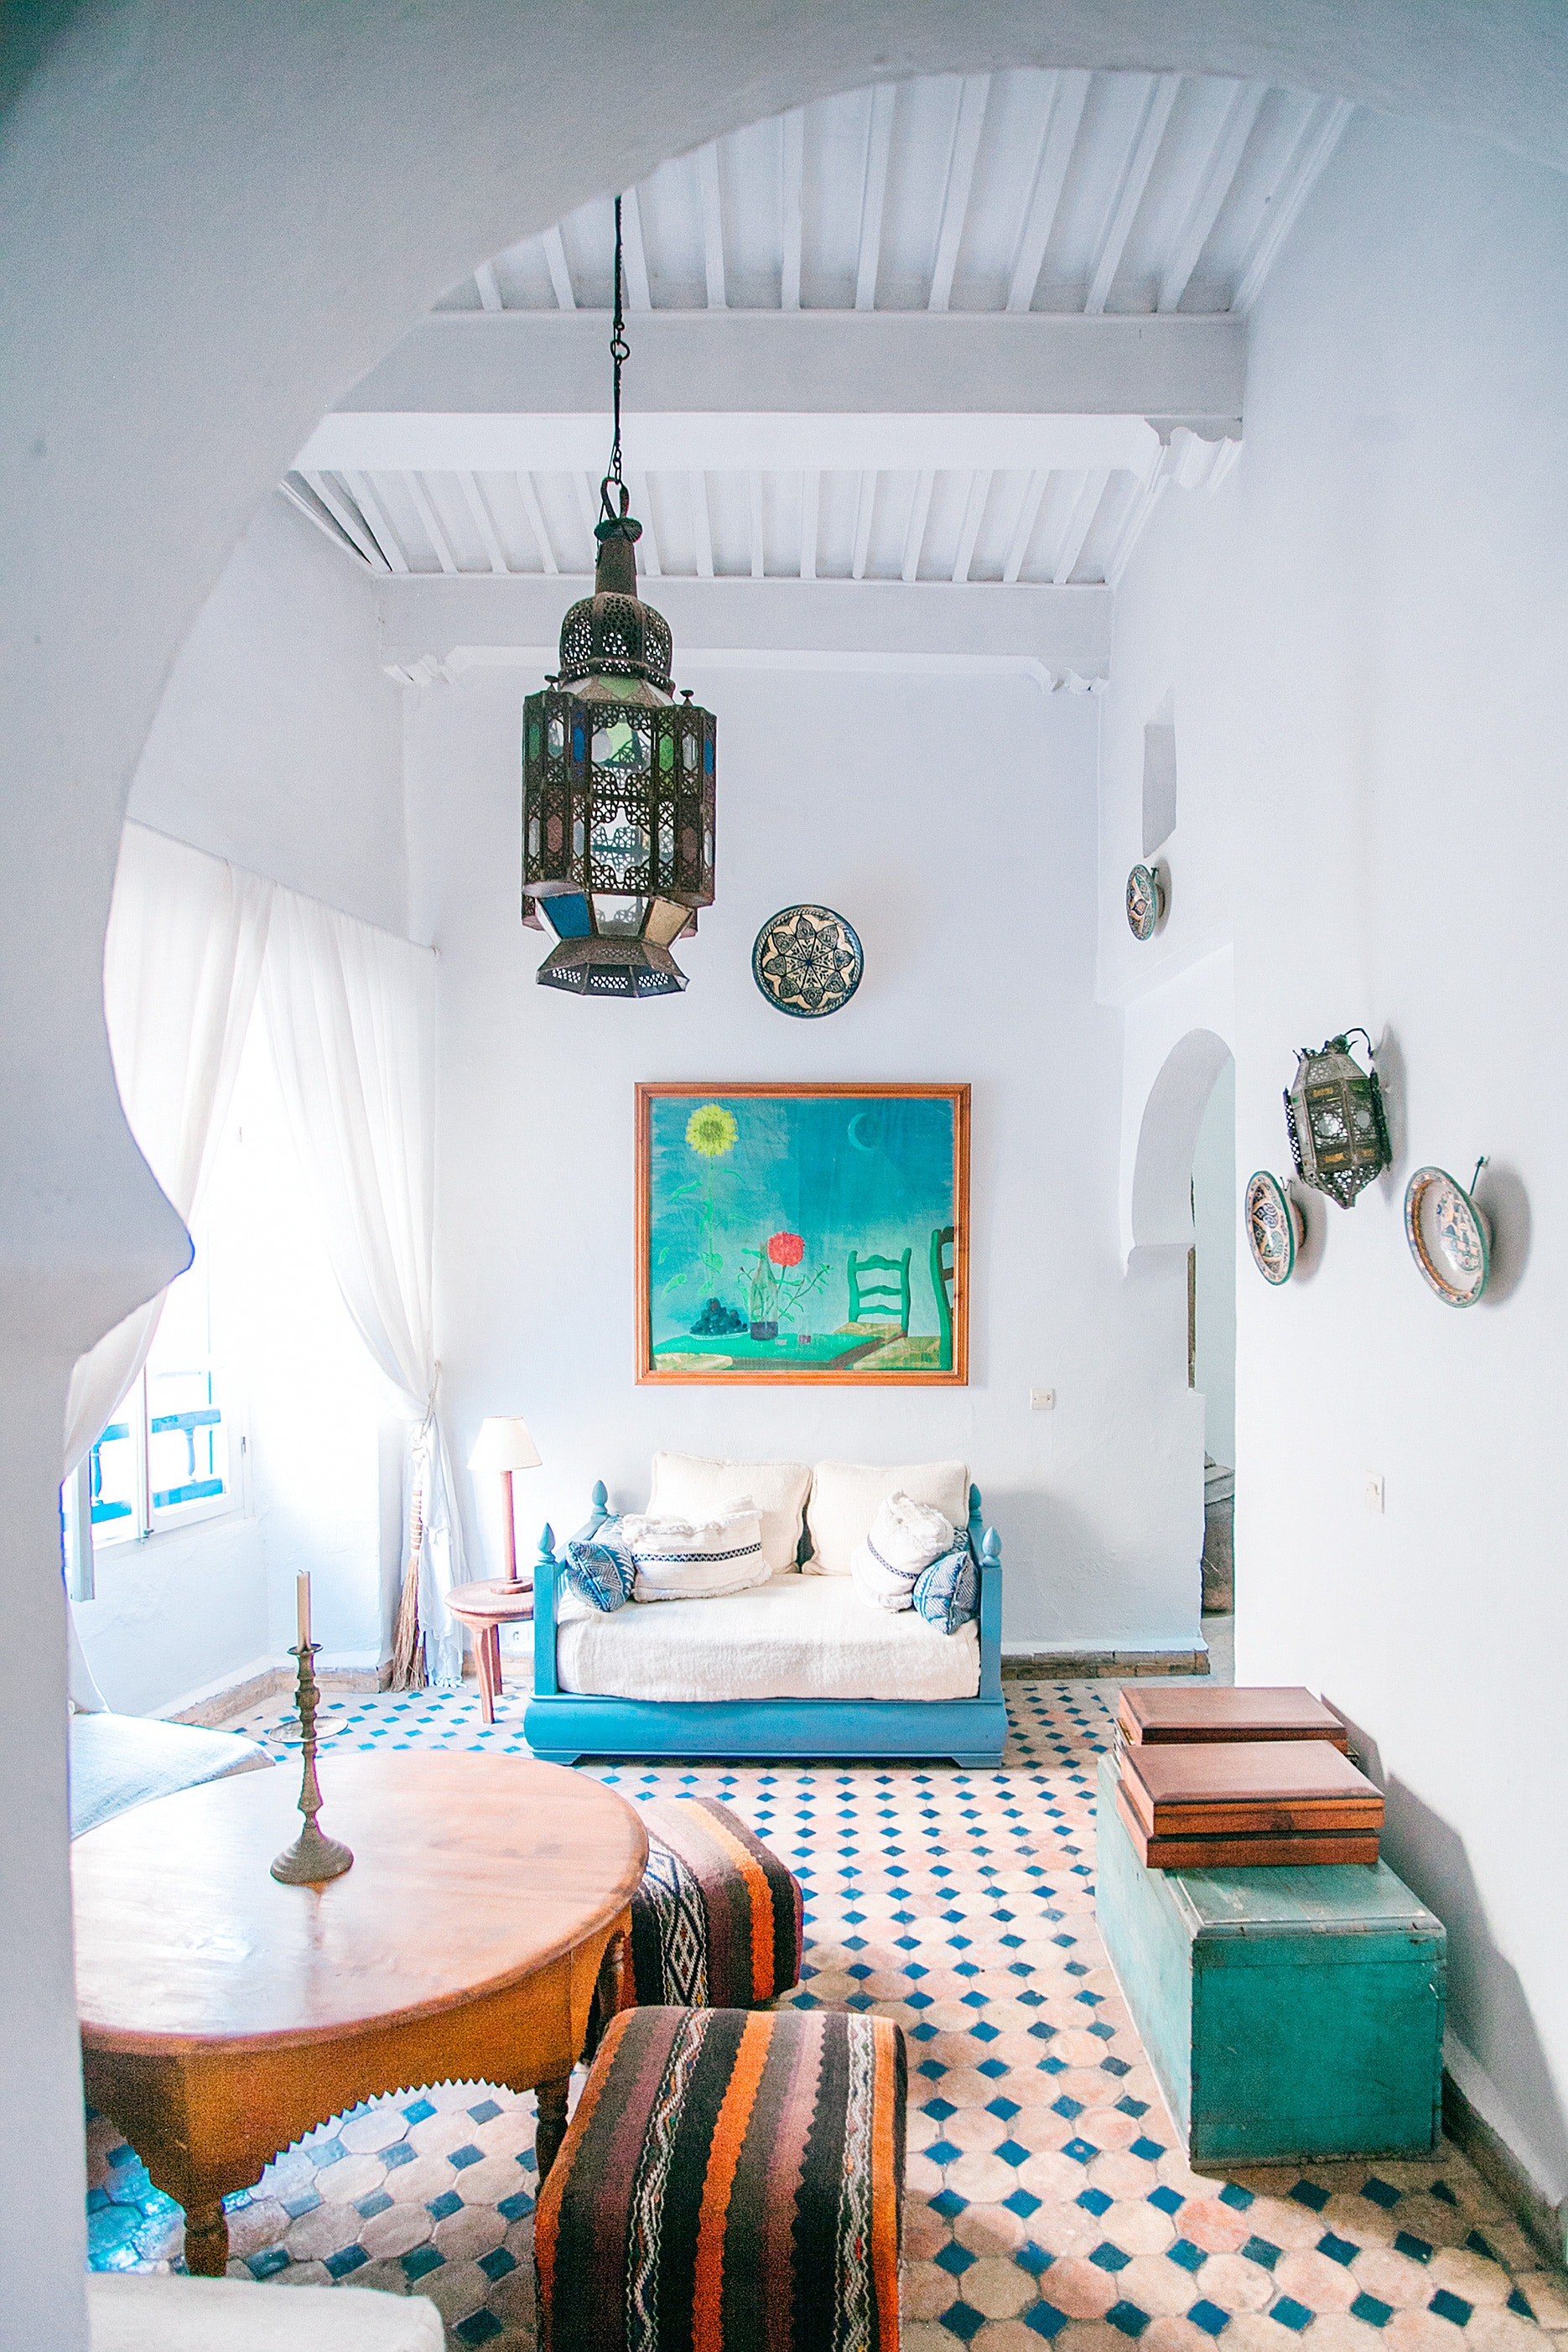 Summer homes, colourful decoration